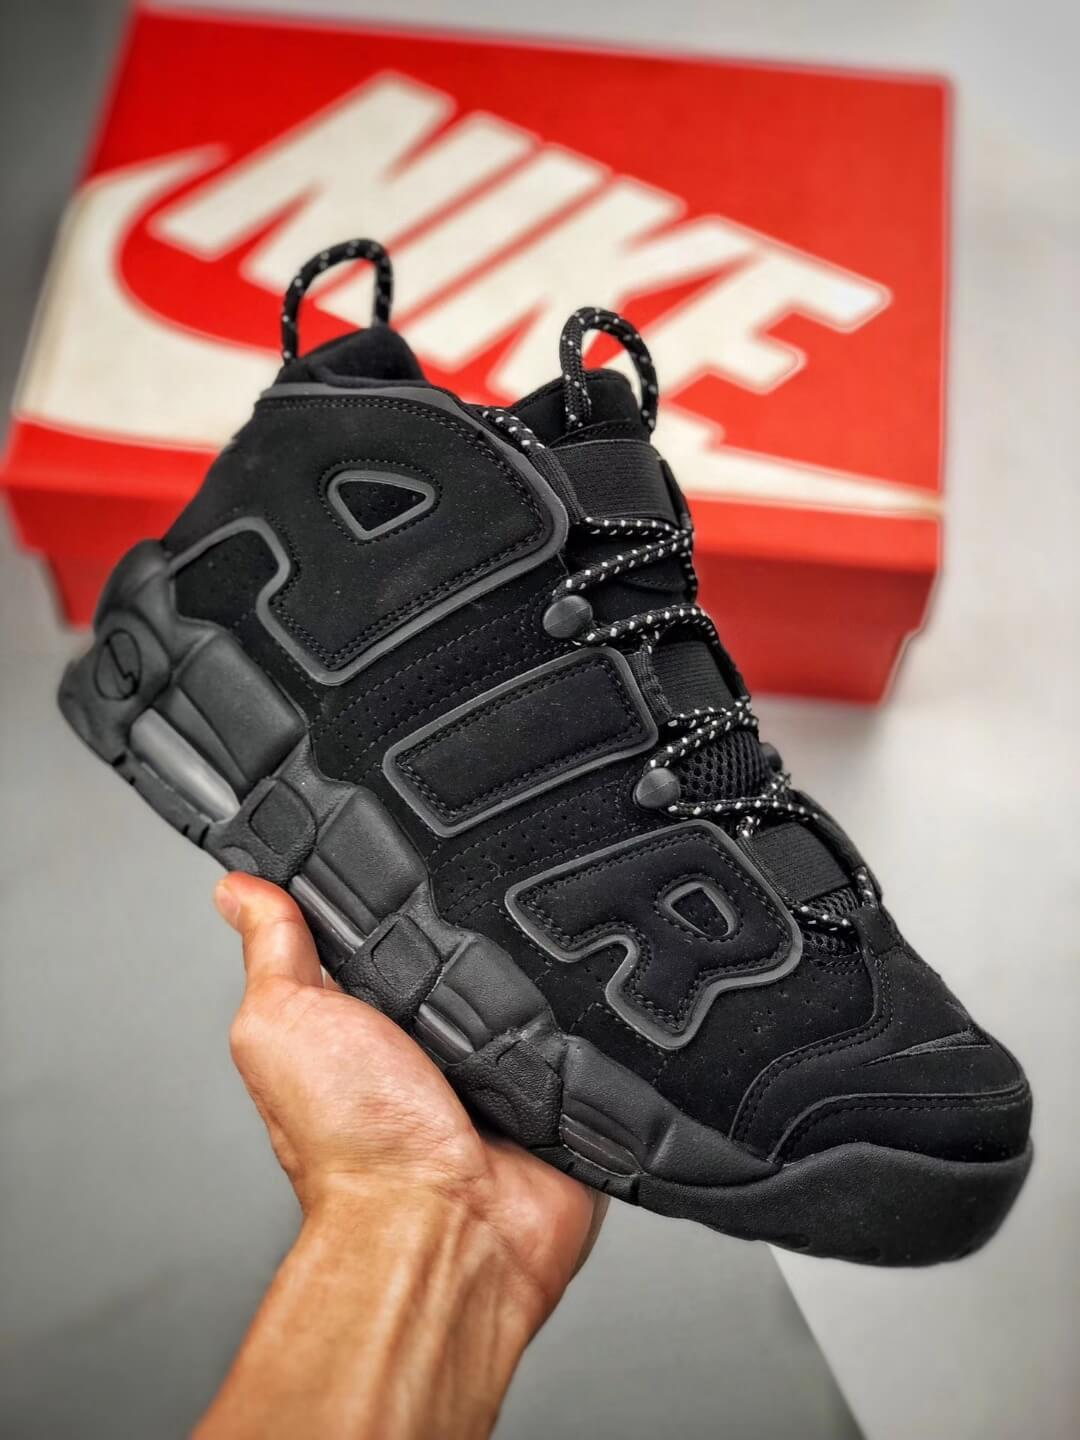 The Nike Air More Uptempo Reflective All black Nubuck Upper 3M Reflective Rep Bastketball Shoes 01